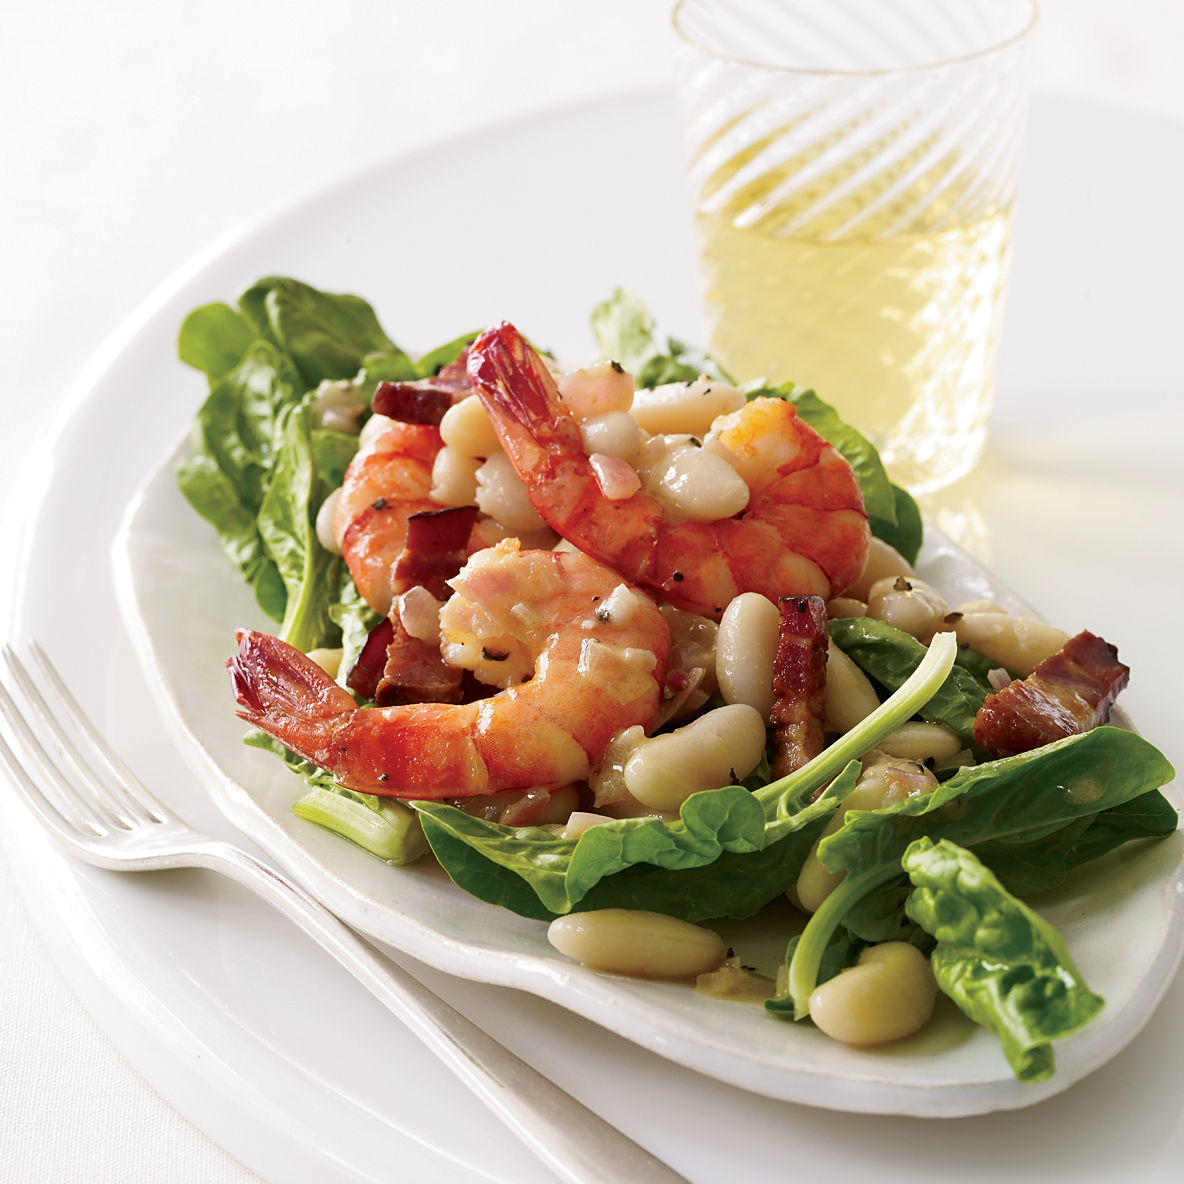 200804-r-spinach-salad-shrimp.jpg